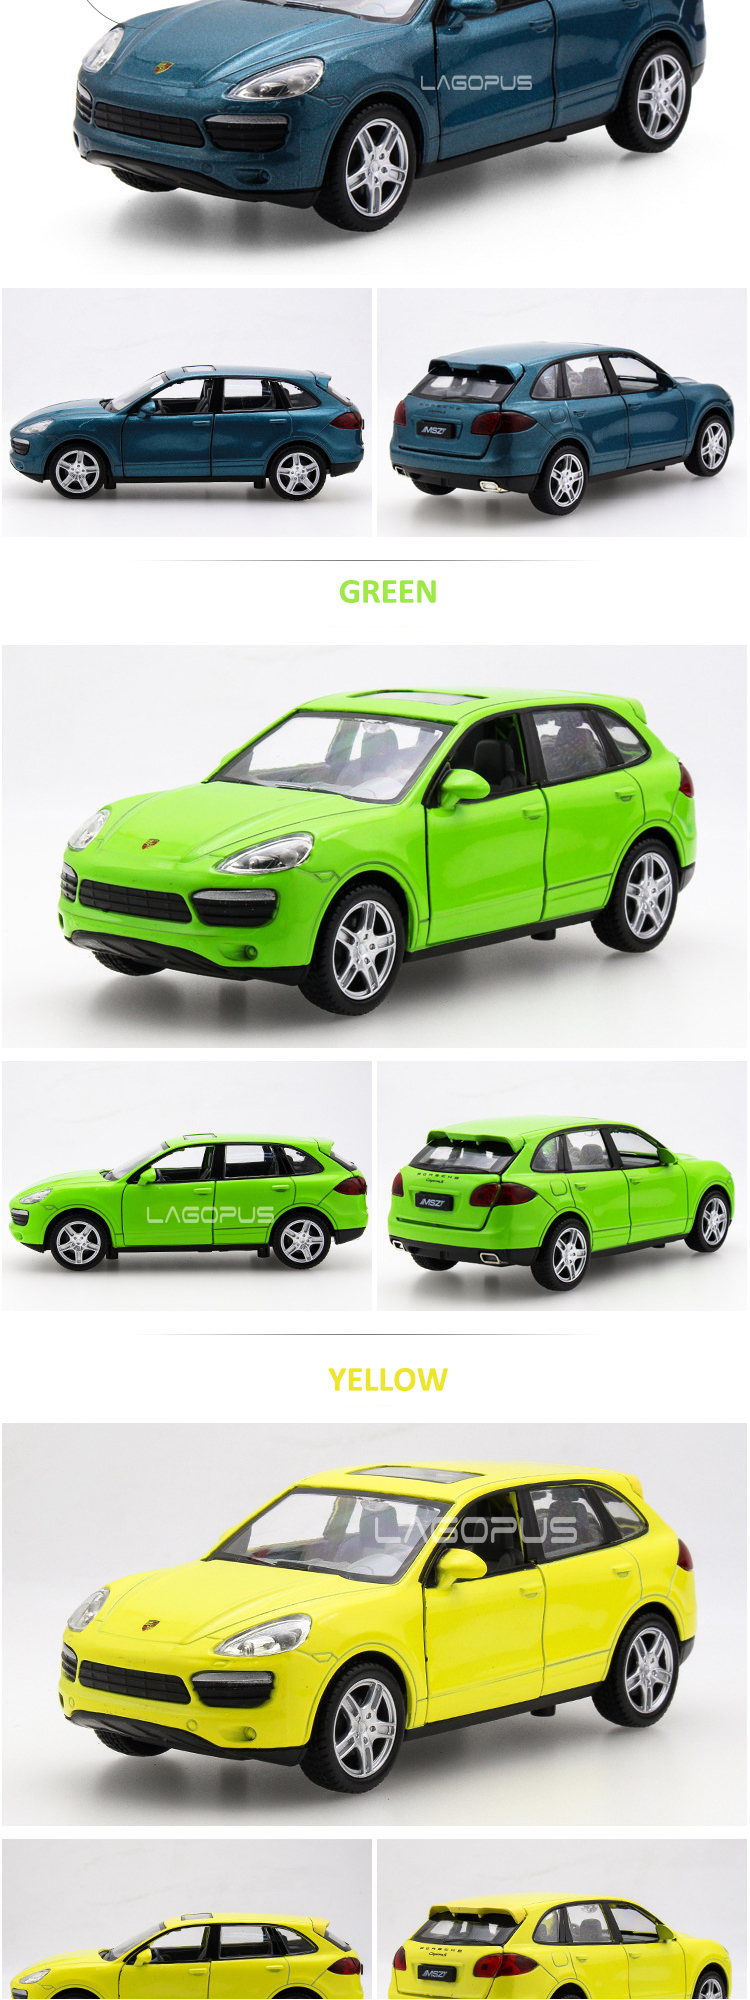 christmas gift lagopus 1:32 Porsched Cayennes New Diecast ABS Alloy Metal Car Model Open Door Sound with Light Pull Back Boy Toy